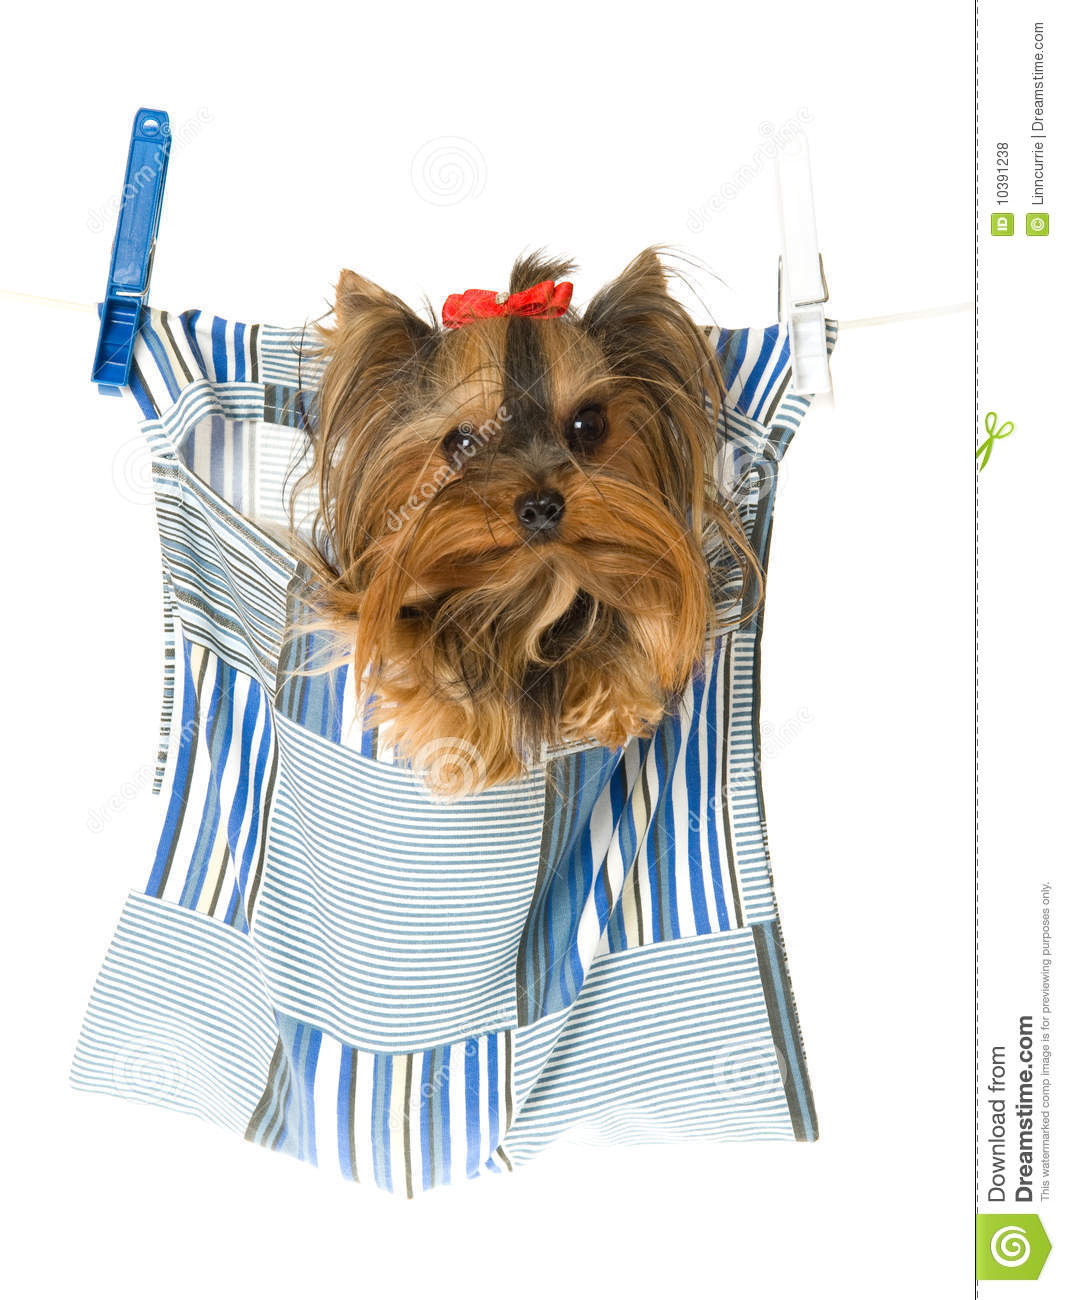 Yorkie Sitting In Clothes Pin Bag Royalty Free Stock